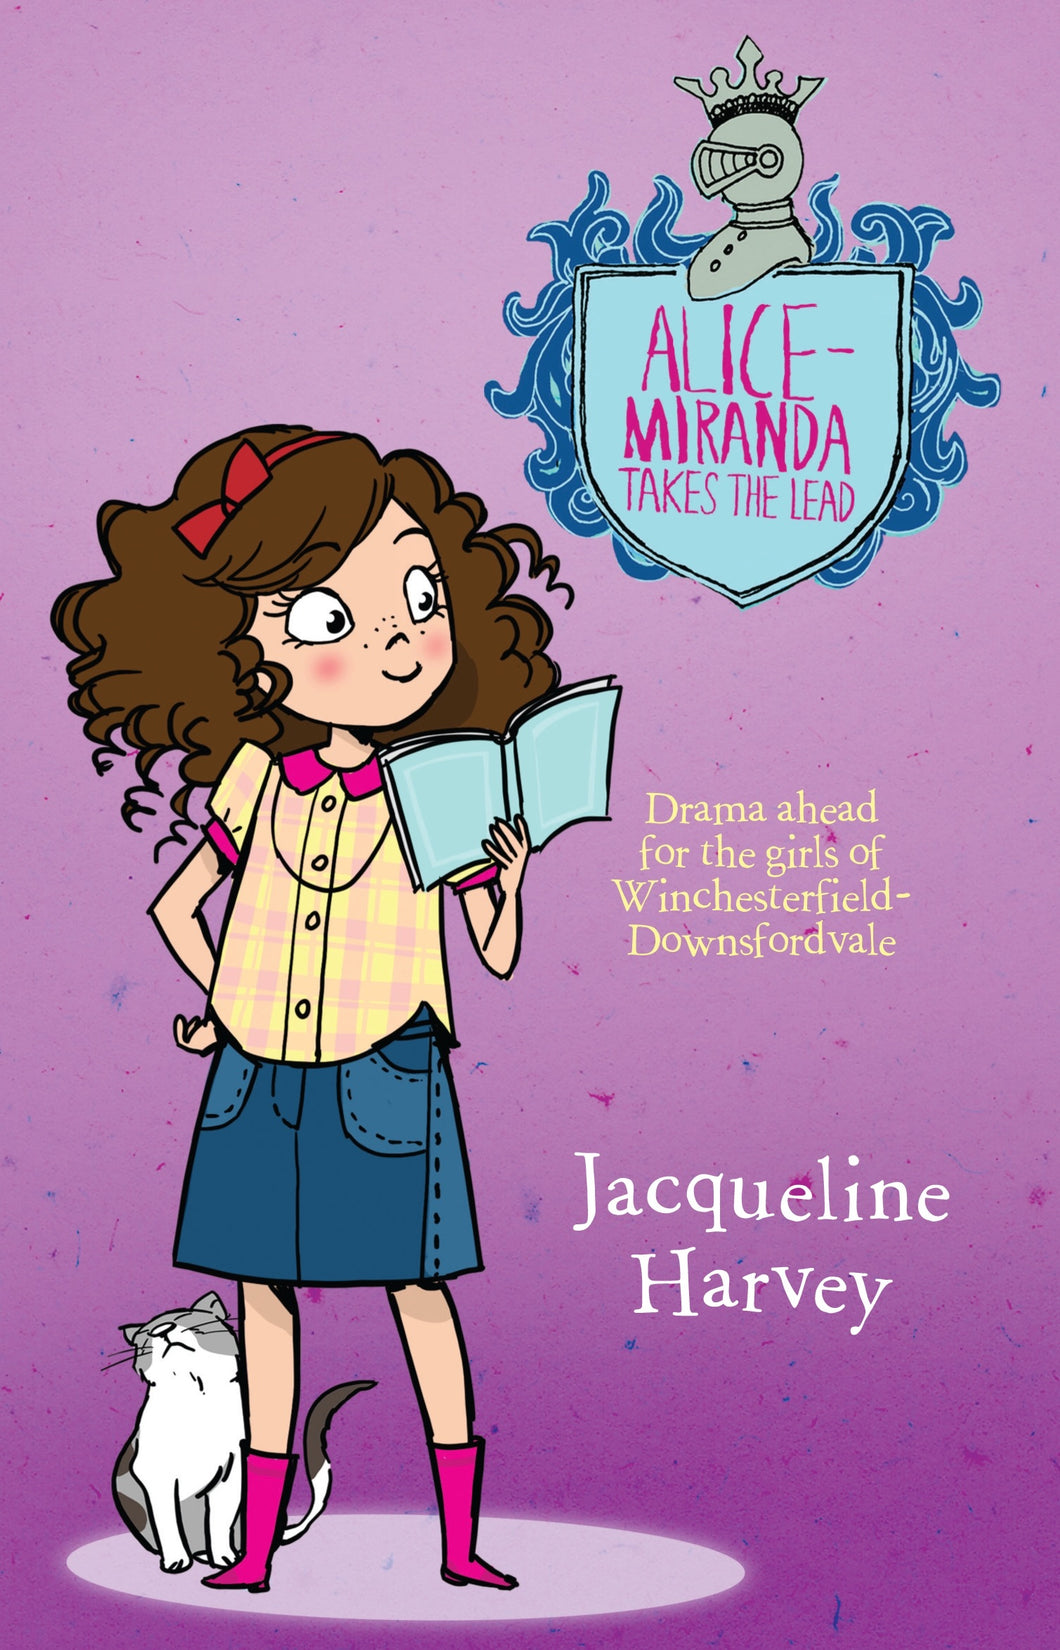 Alice-Miranda Takes the Lead (Book #3) by Jacqueline Harvey